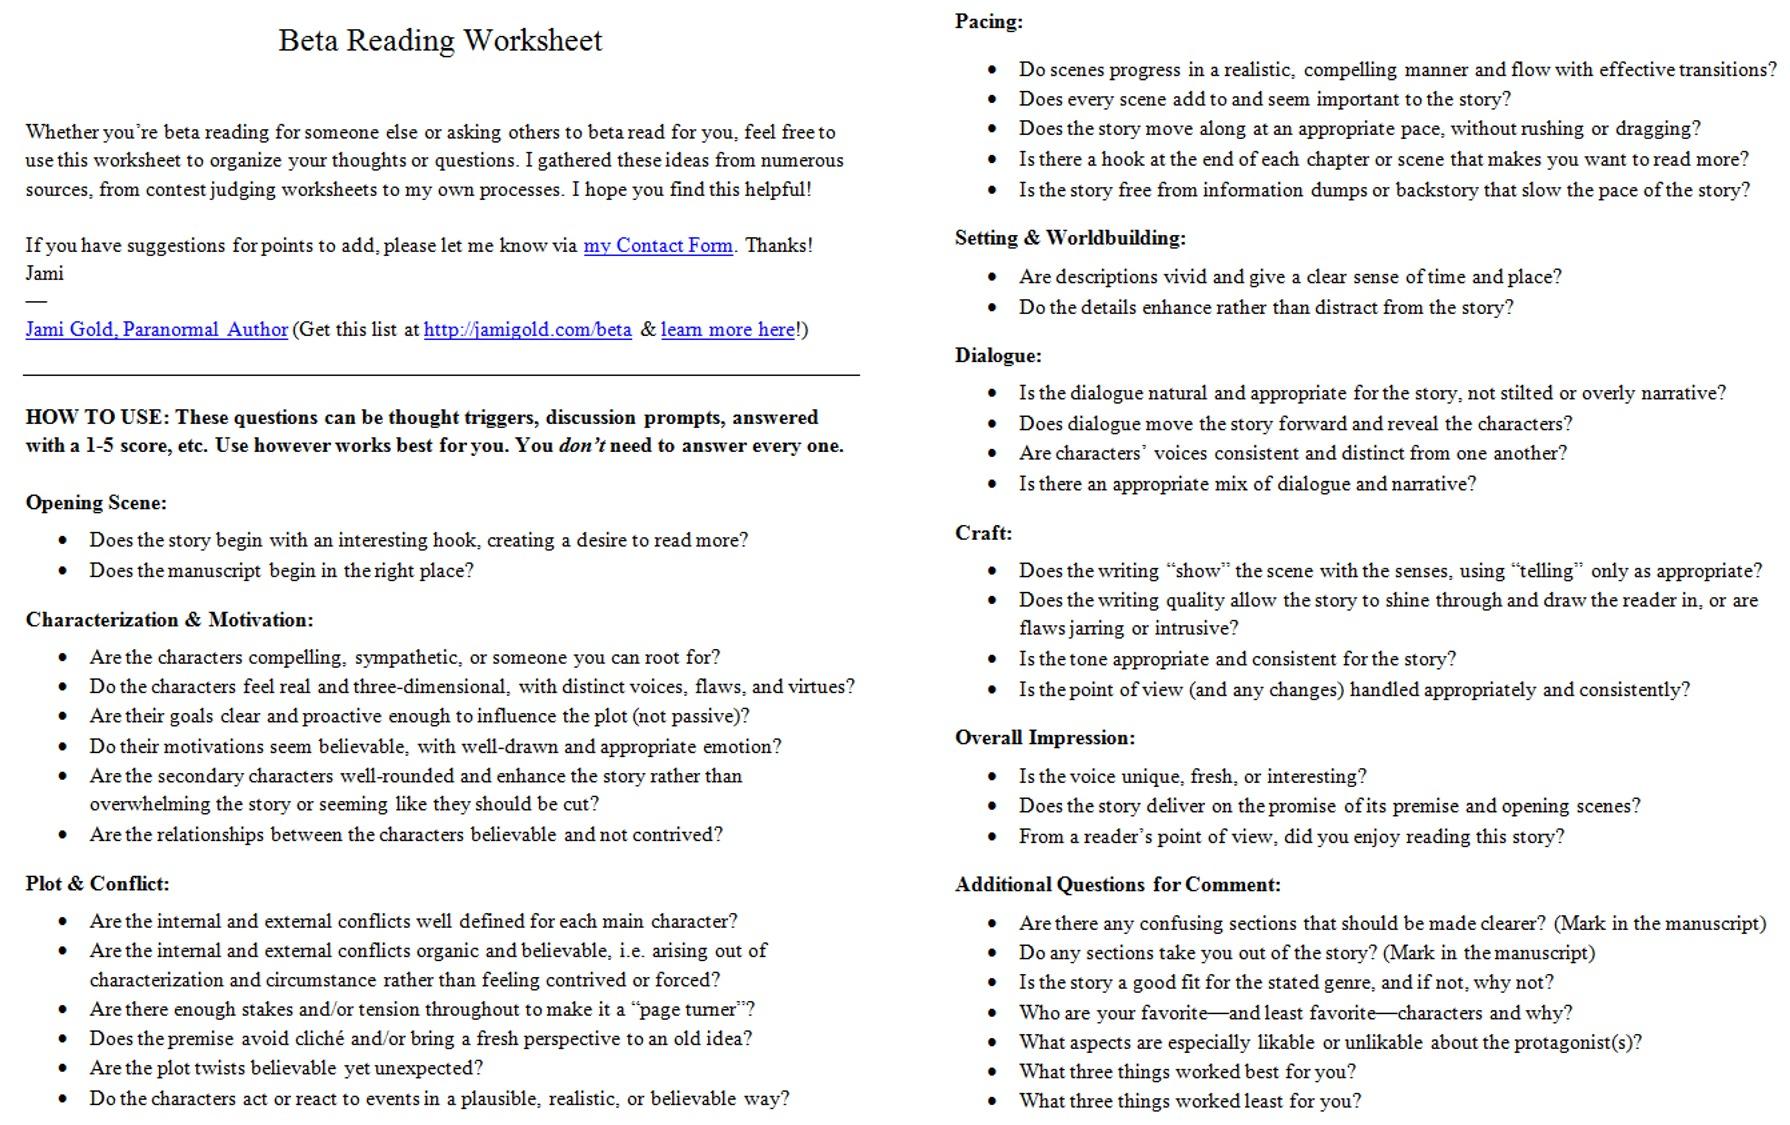 Aldiablosus  Mesmerizing Worksheets For Writers  Jami Gold Paranormal Author With Magnificent Screen Shot Of The Twopage Beta Reading Worksheet With Divine Conjuguemos Grammar Worksheet Also All About Me Worksheet For Adults In Addition Exponents Worksheets Th Grade And Short And Long Vowels Worksheets As Well As Product And Quotient Rule Worksheet Additionally Improper To Mixed Fractions Worksheet From Jamigoldcom With Aldiablosus  Magnificent Worksheets For Writers  Jami Gold Paranormal Author With Divine Screen Shot Of The Twopage Beta Reading Worksheet And Mesmerizing Conjuguemos Grammar Worksheet Also All About Me Worksheet For Adults In Addition Exponents Worksheets Th Grade From Jamigoldcom